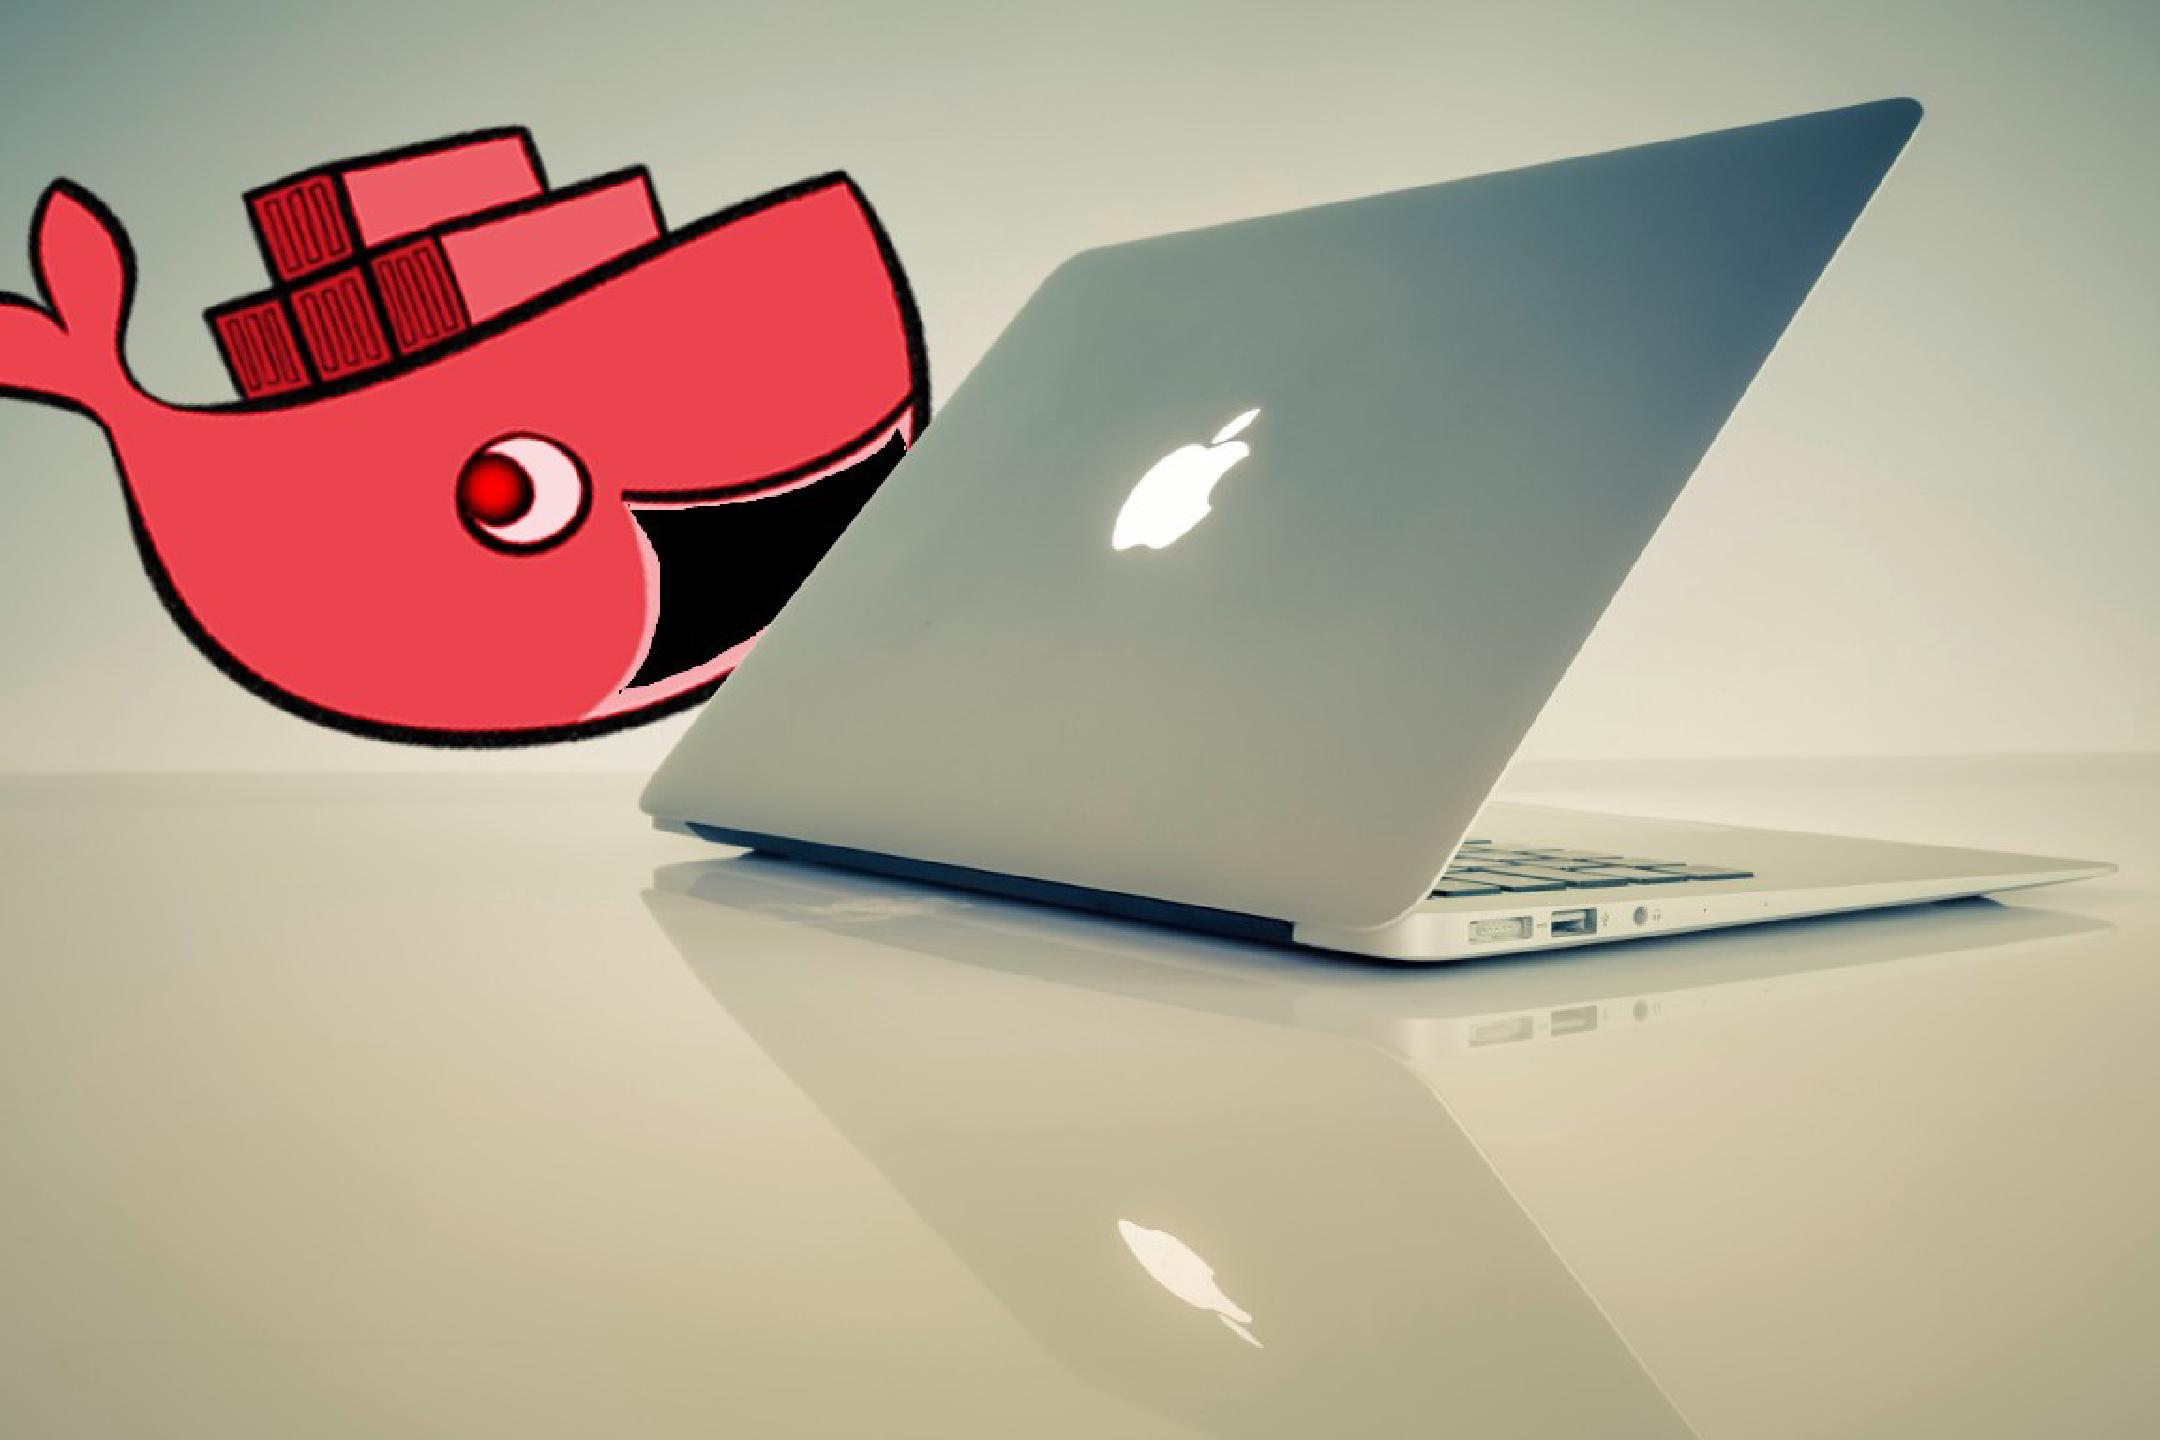 a semi-open MacBook Pro sitting inconspicously on a table with a cartoon drawing of a whale threatening to swallow it in the background